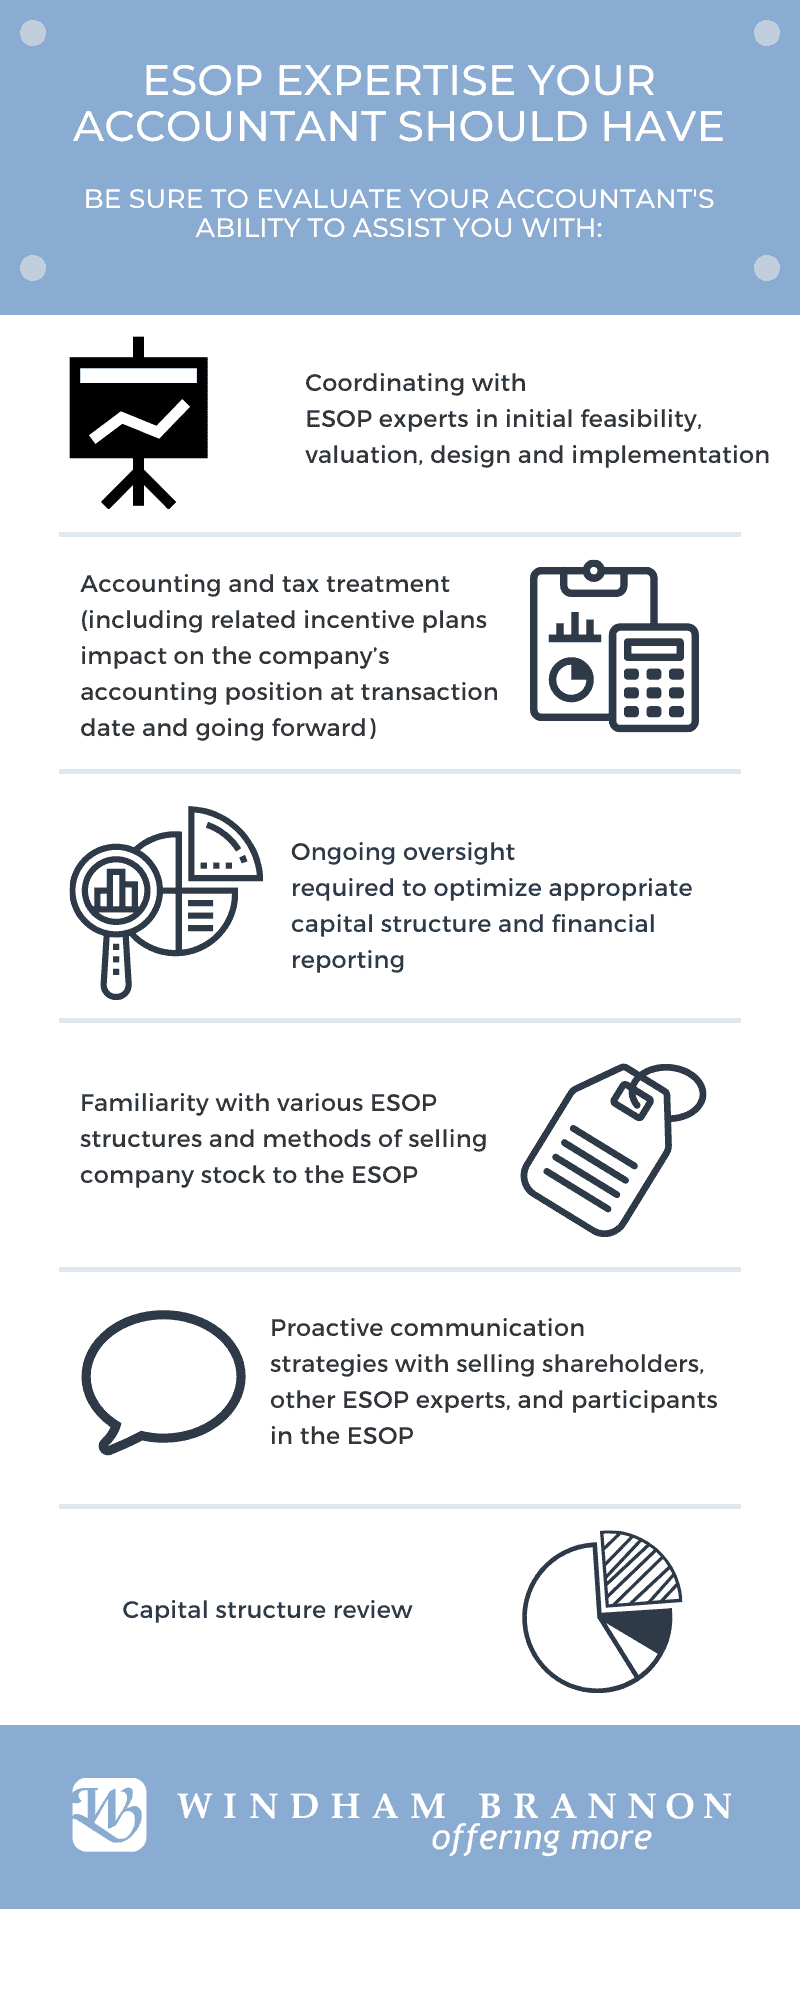 ESOP Expertise Your Accountant Should Have